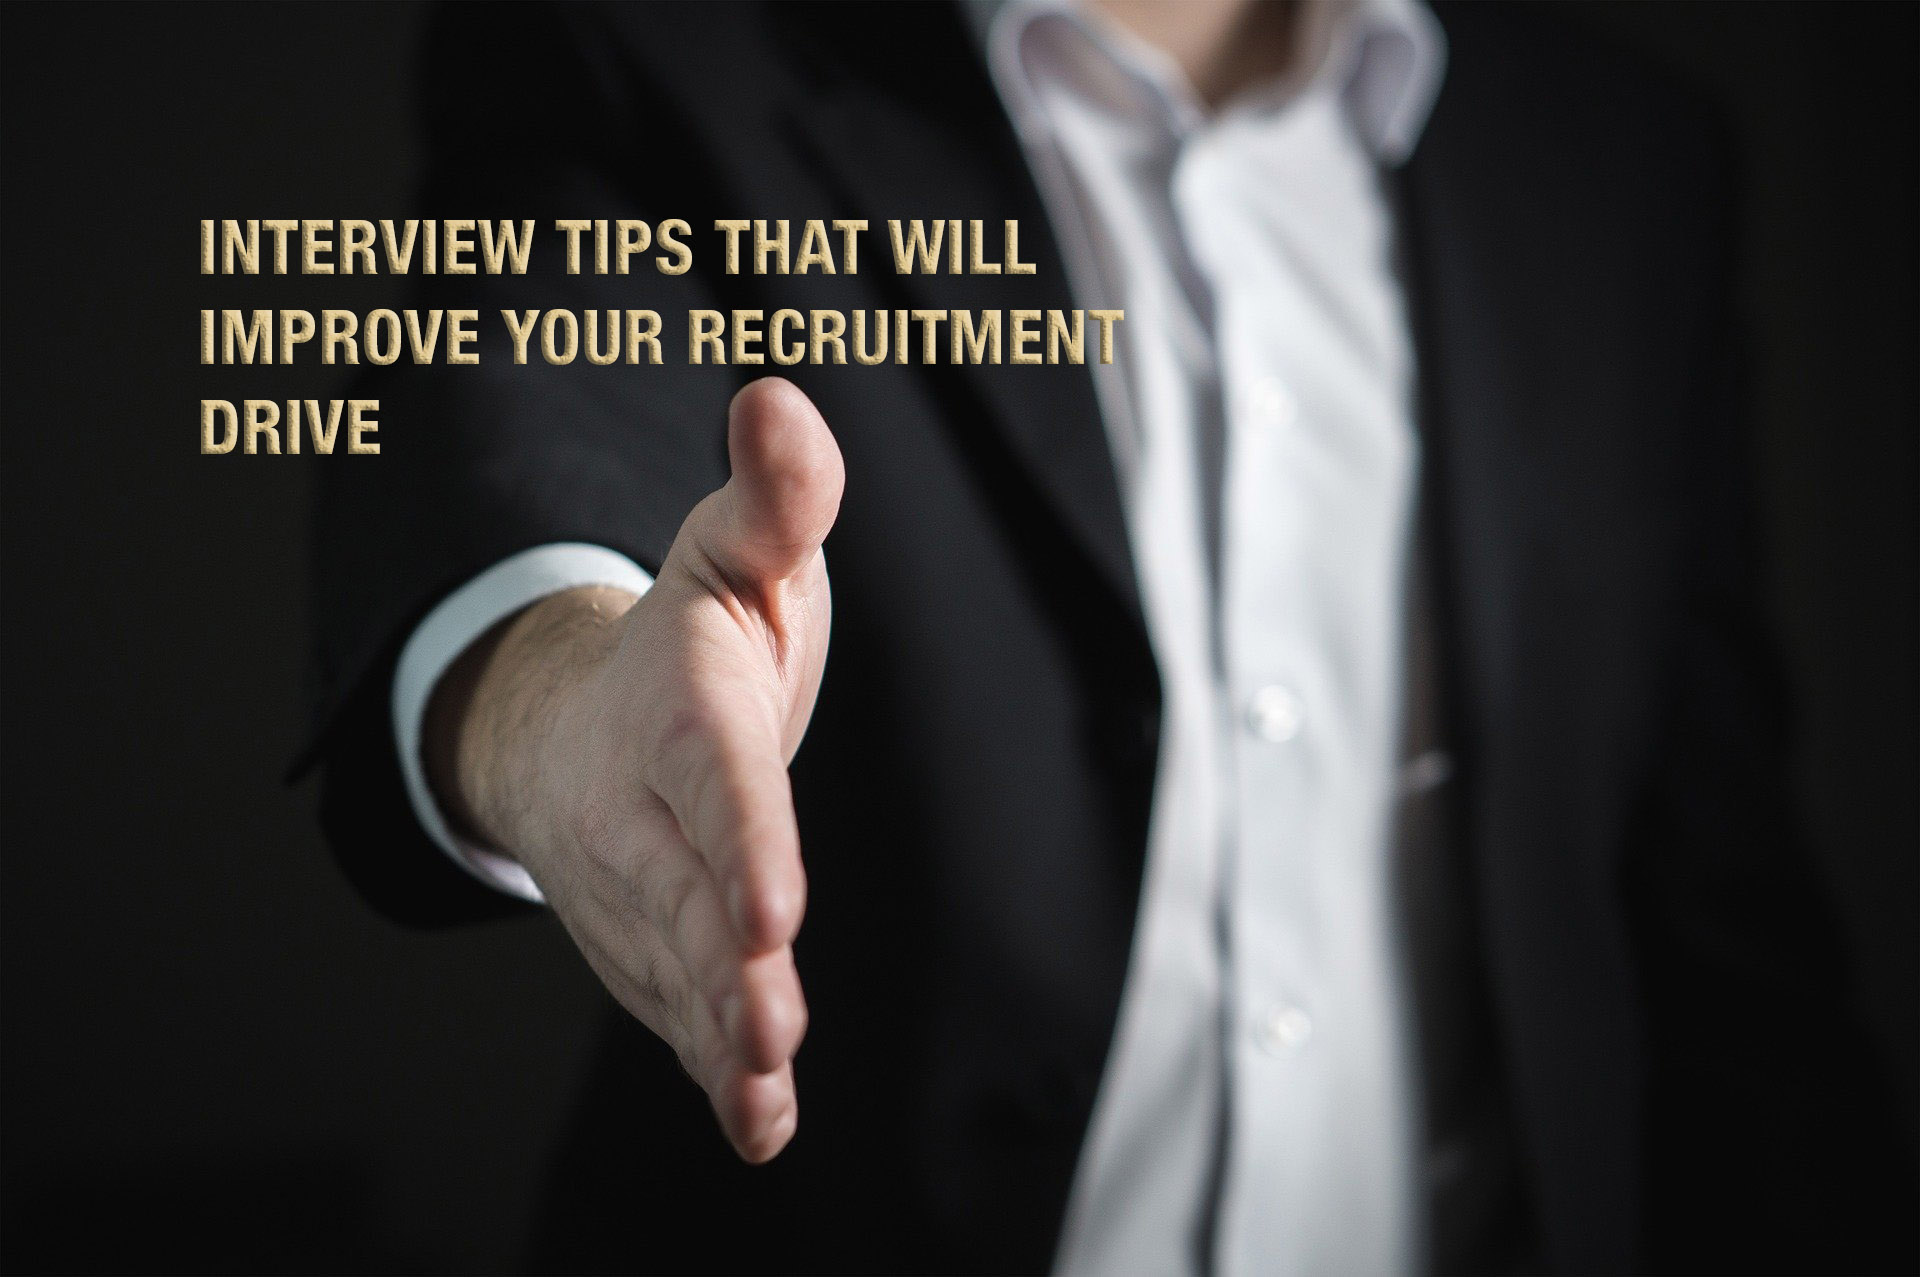 Interview Tips That Will Improve Your Recruitment Drive